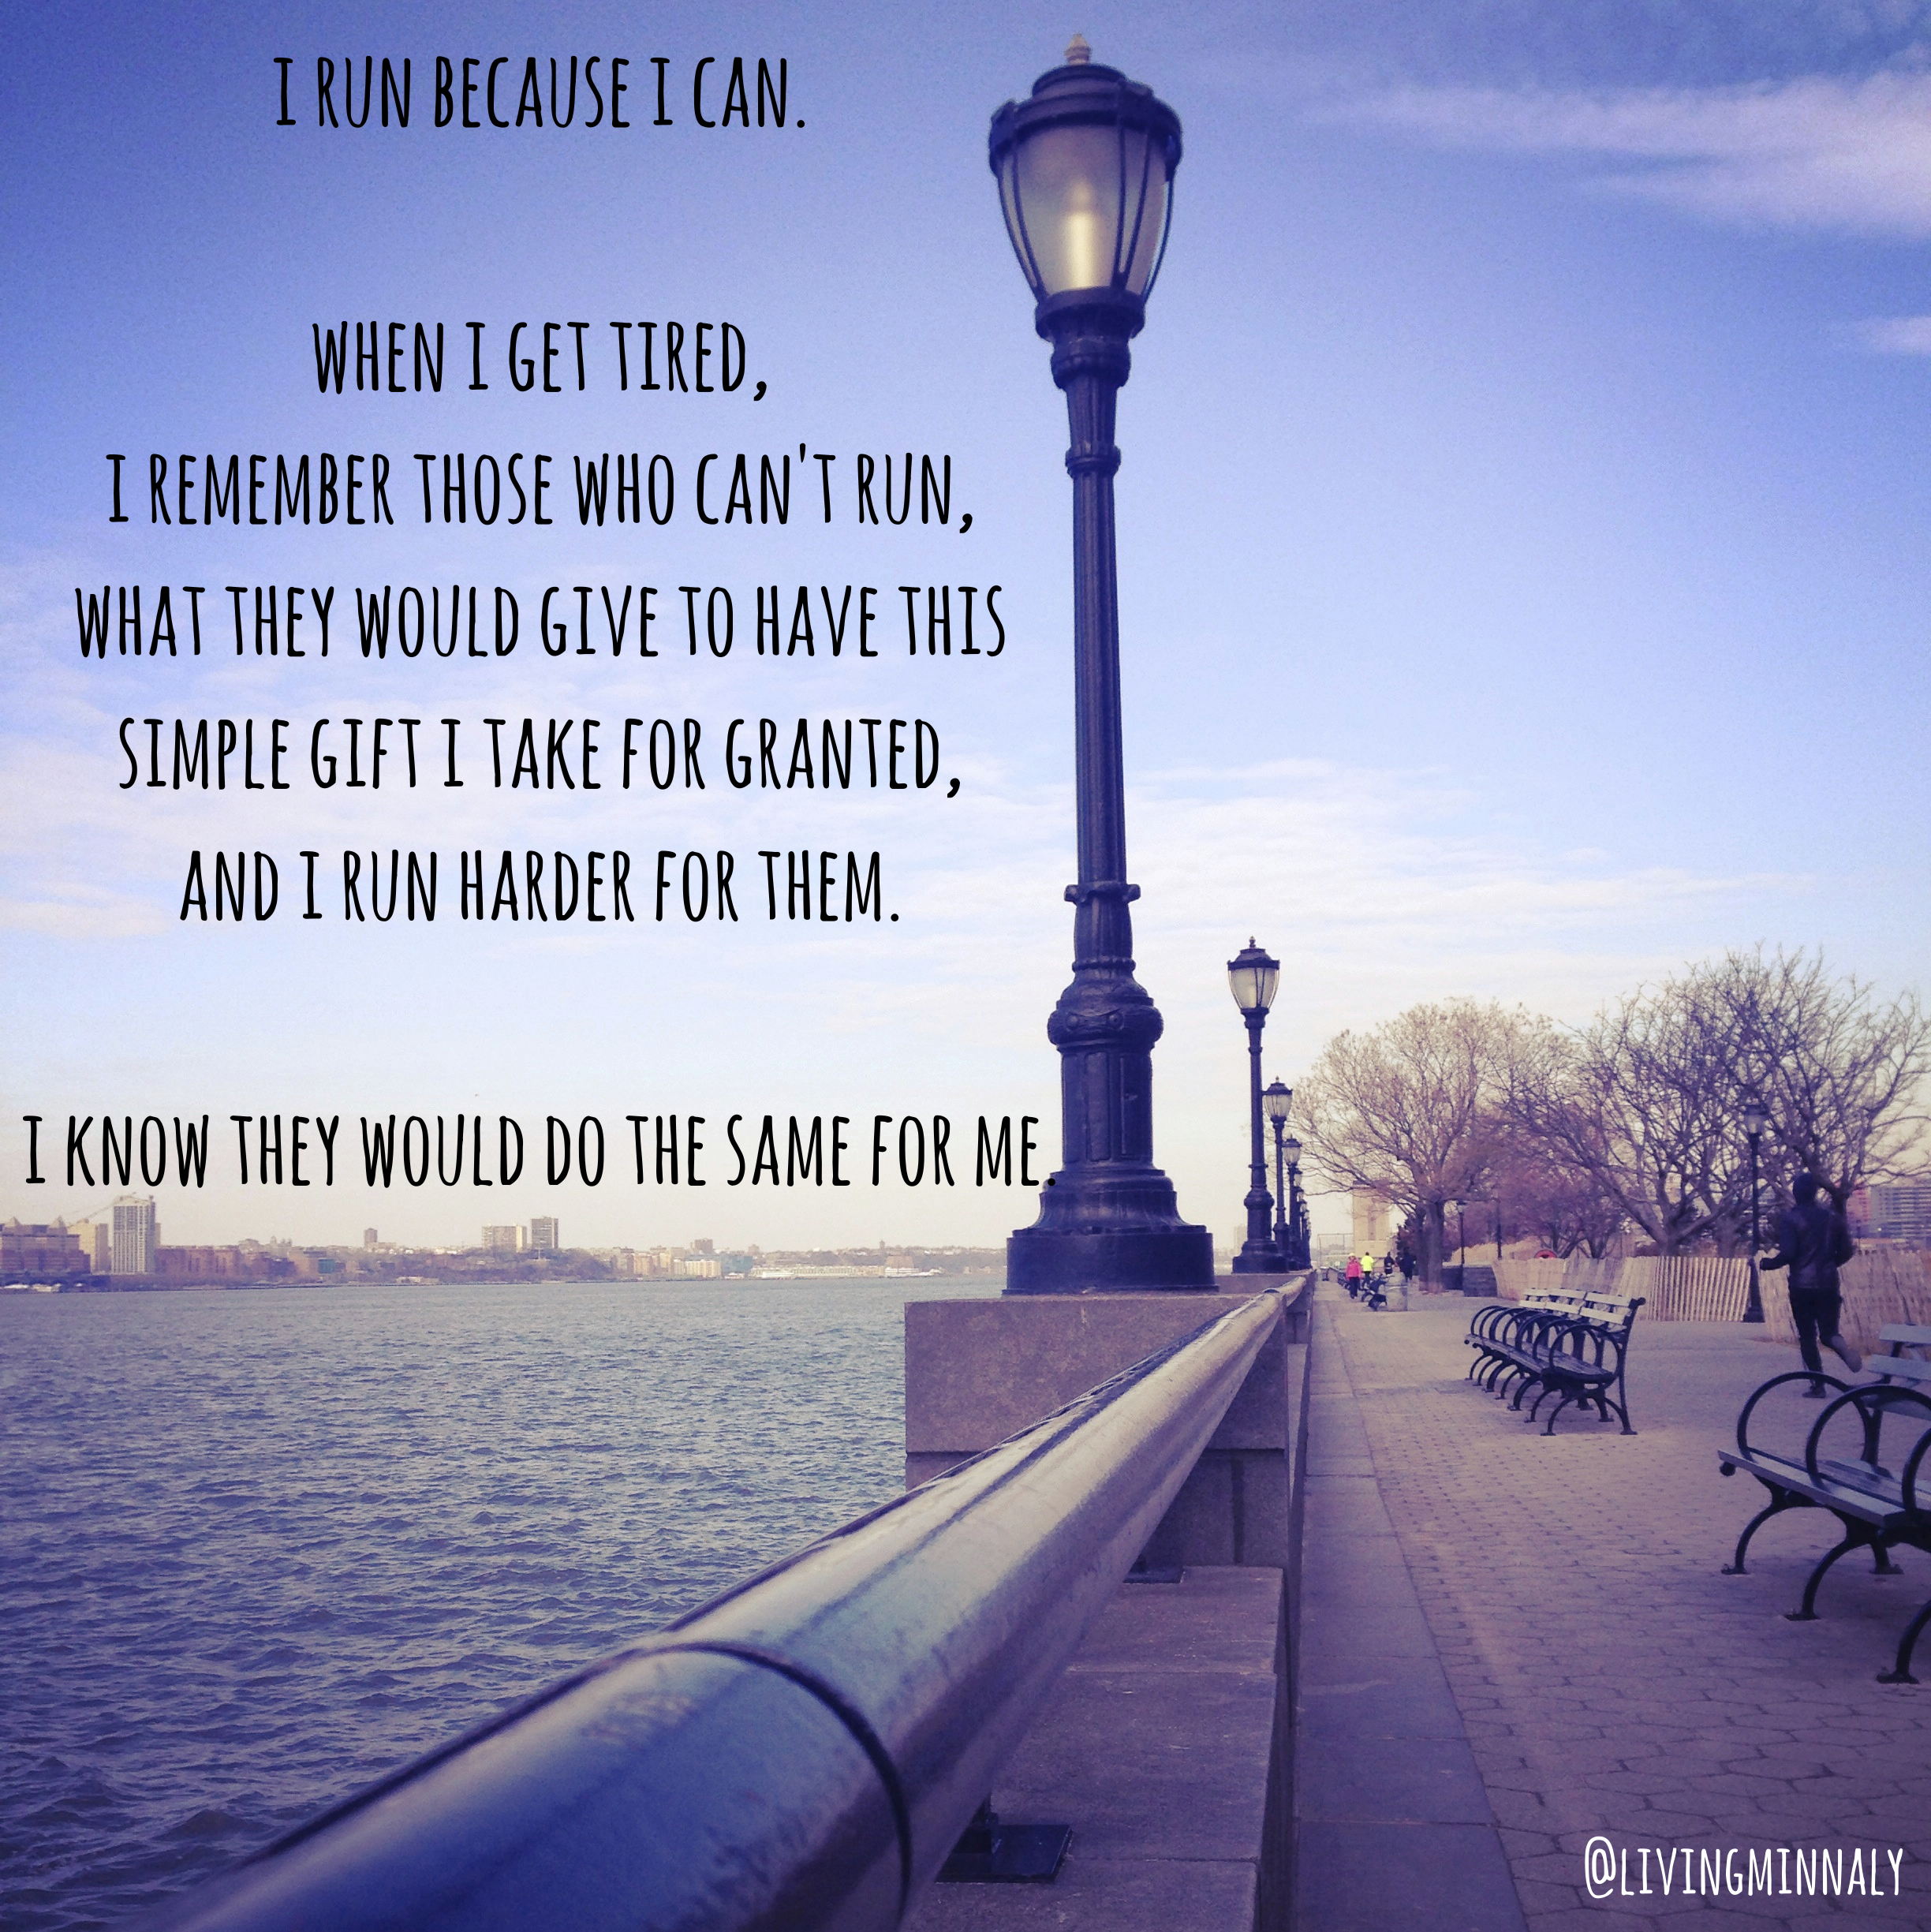 Run because you can | Living Minnaly